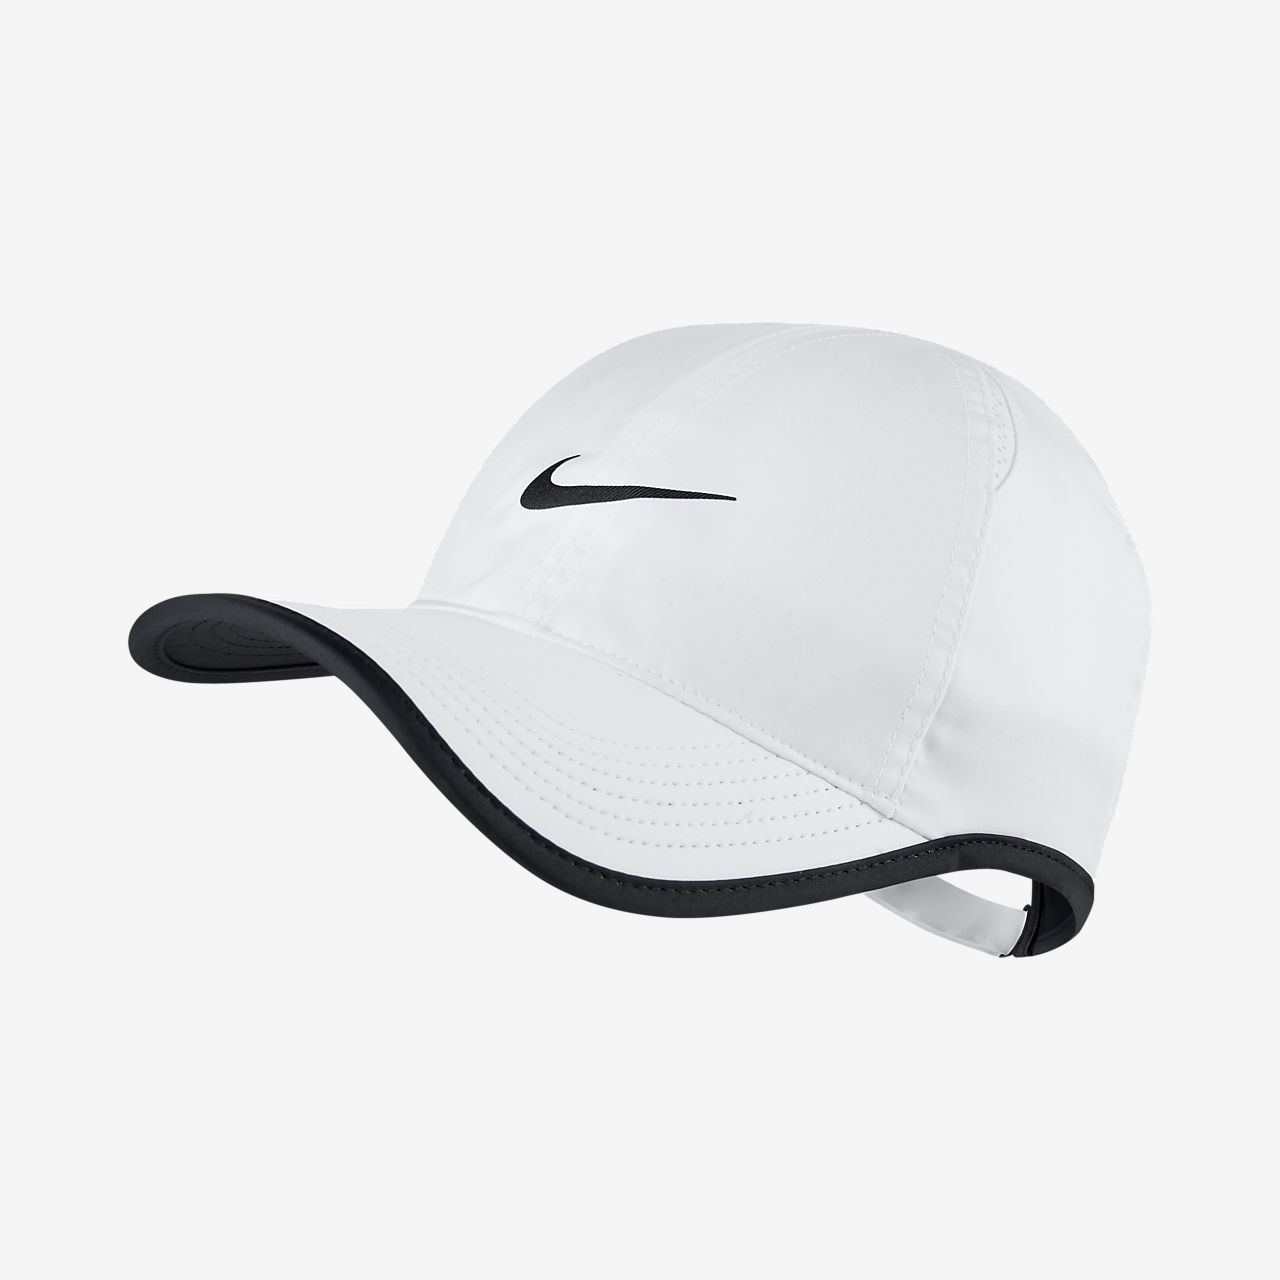 303c69c82f7 Low Resolution NikeCourt AeroBill Featherlight Tennis Cap NikeCourt  AeroBill Featherlight Tennis Cap